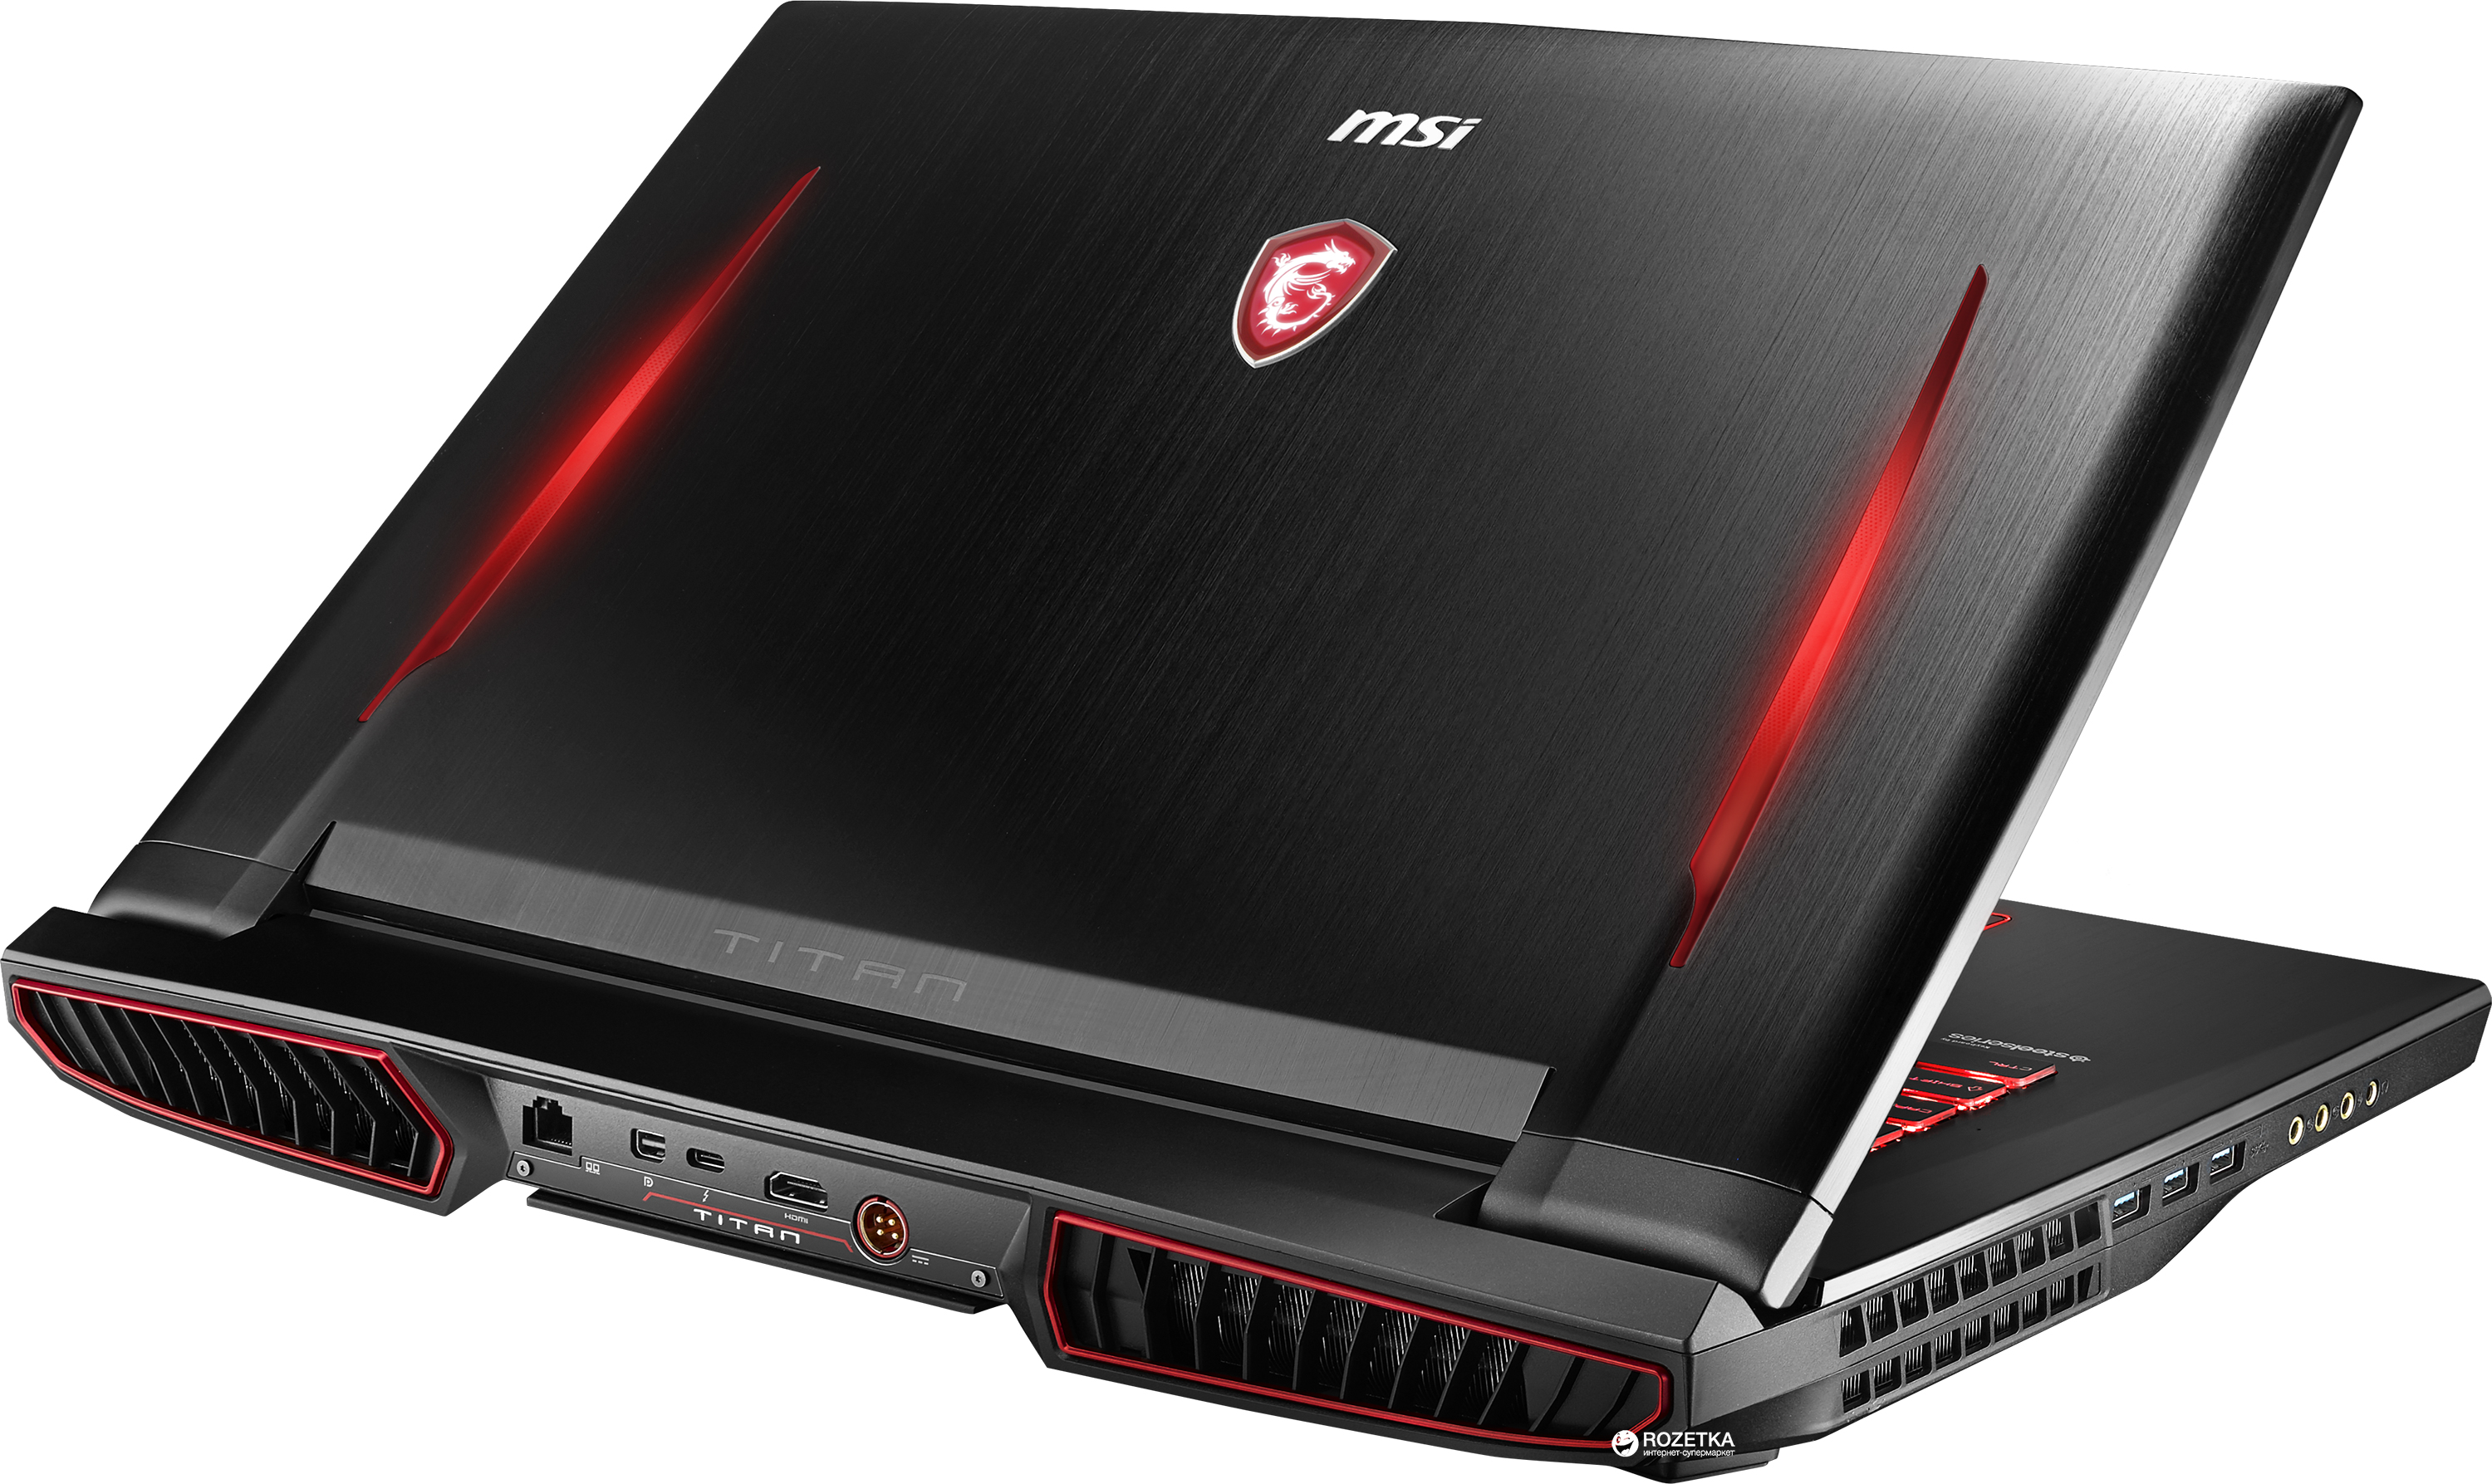 msi laptop hatoldala